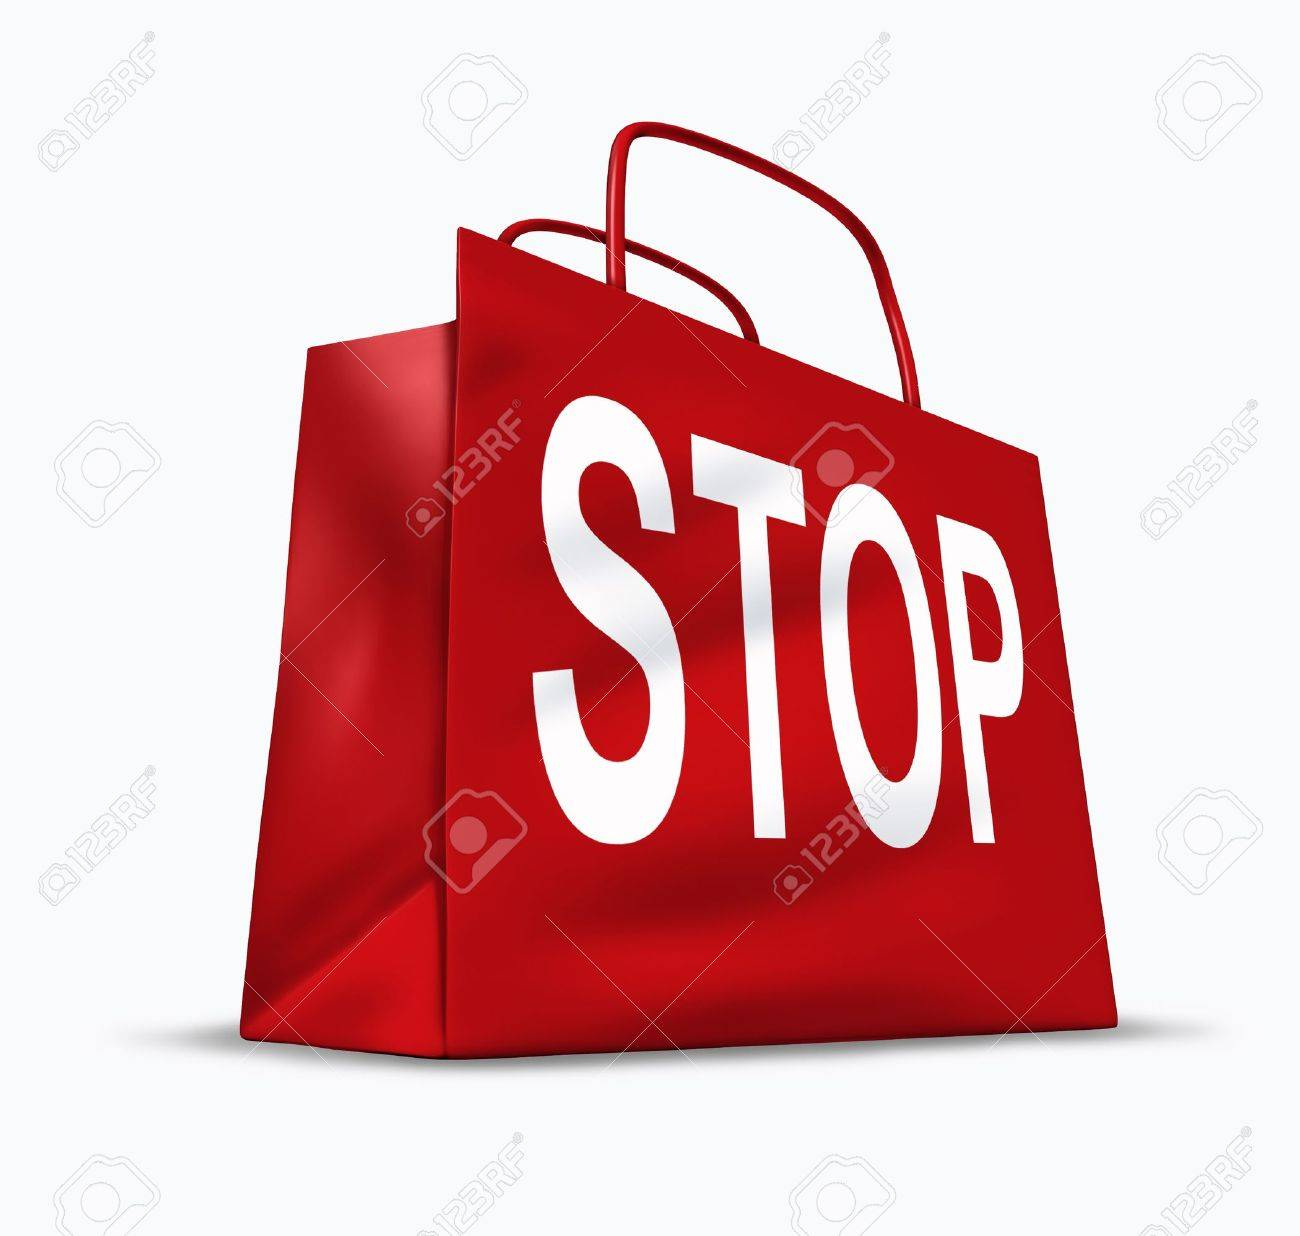 Stop shopping symbol of the economic problems of spending too much and falling into debt and bankruptcy caused by interest rates and a slow economy represented by a red shopping bag. - 10945908